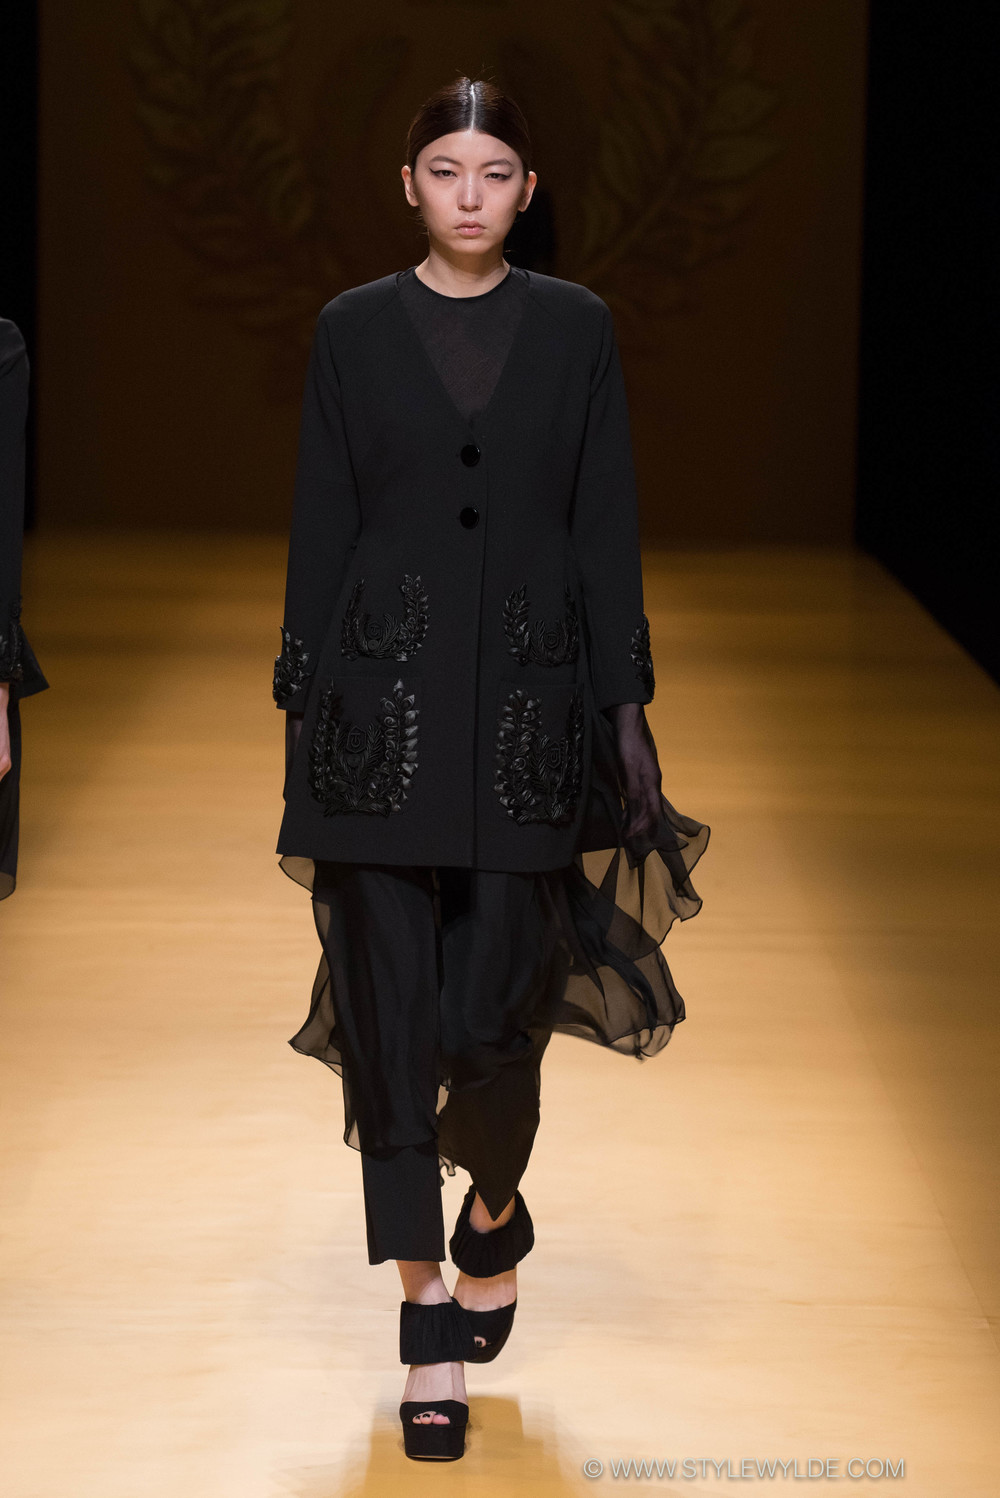 STYLEWYLDE-AsiaFashionMeets-Tokyo_Aw16-12.jpg